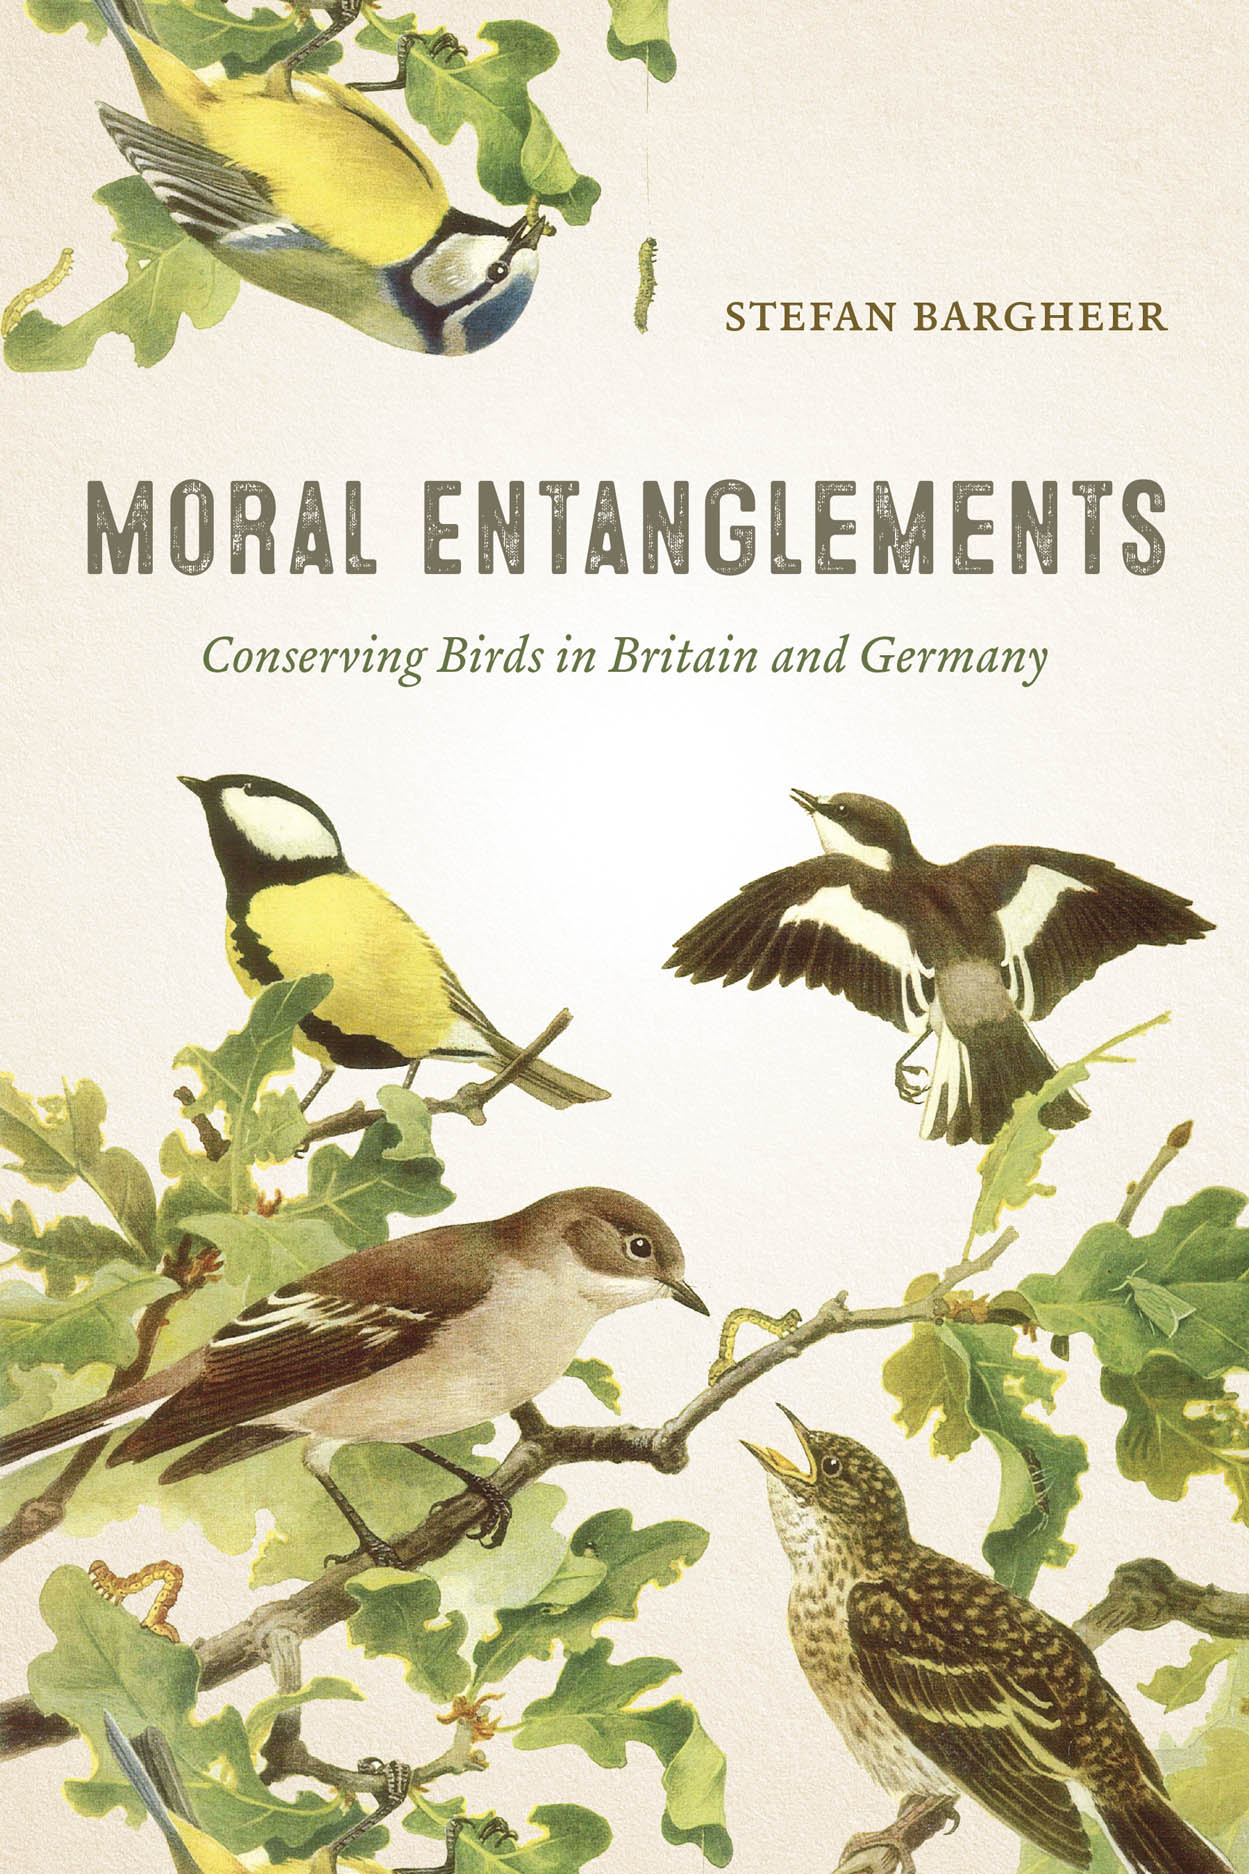 Moral Entanglements: Conserving Birds in Britain and Germany